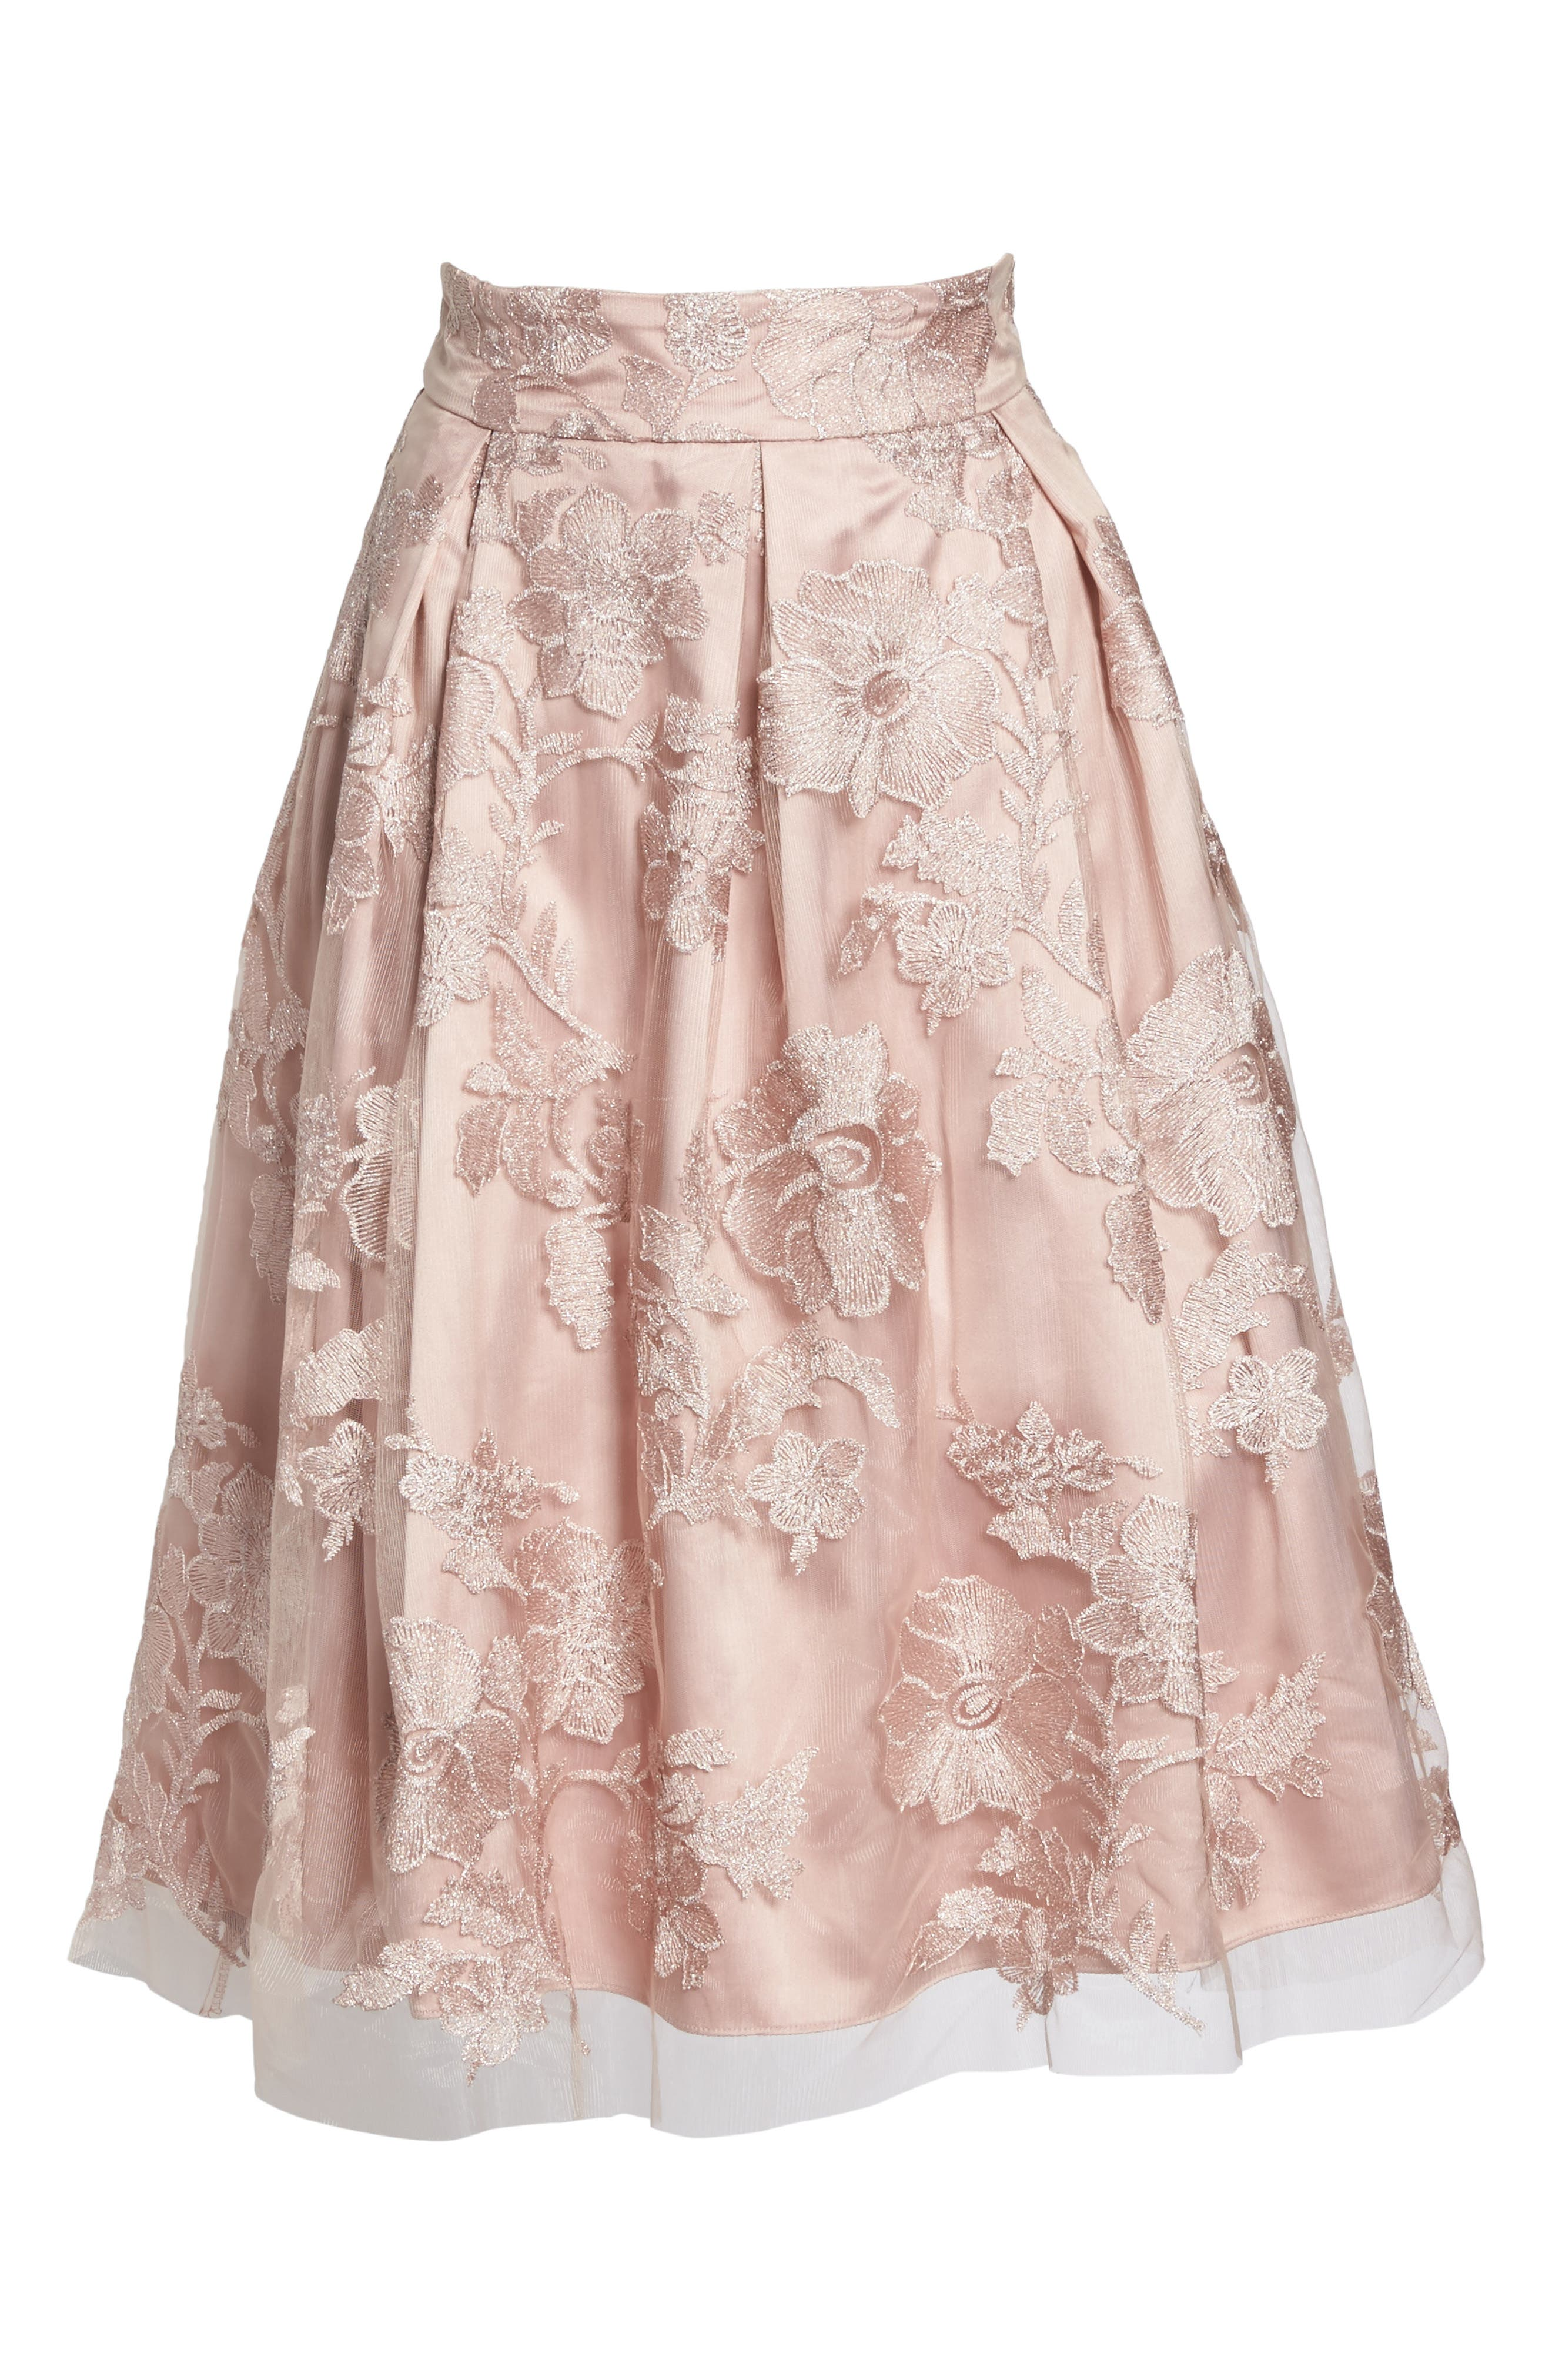 Floral Embroidered Skirt,                             Alternate thumbnail 6, color,                             254